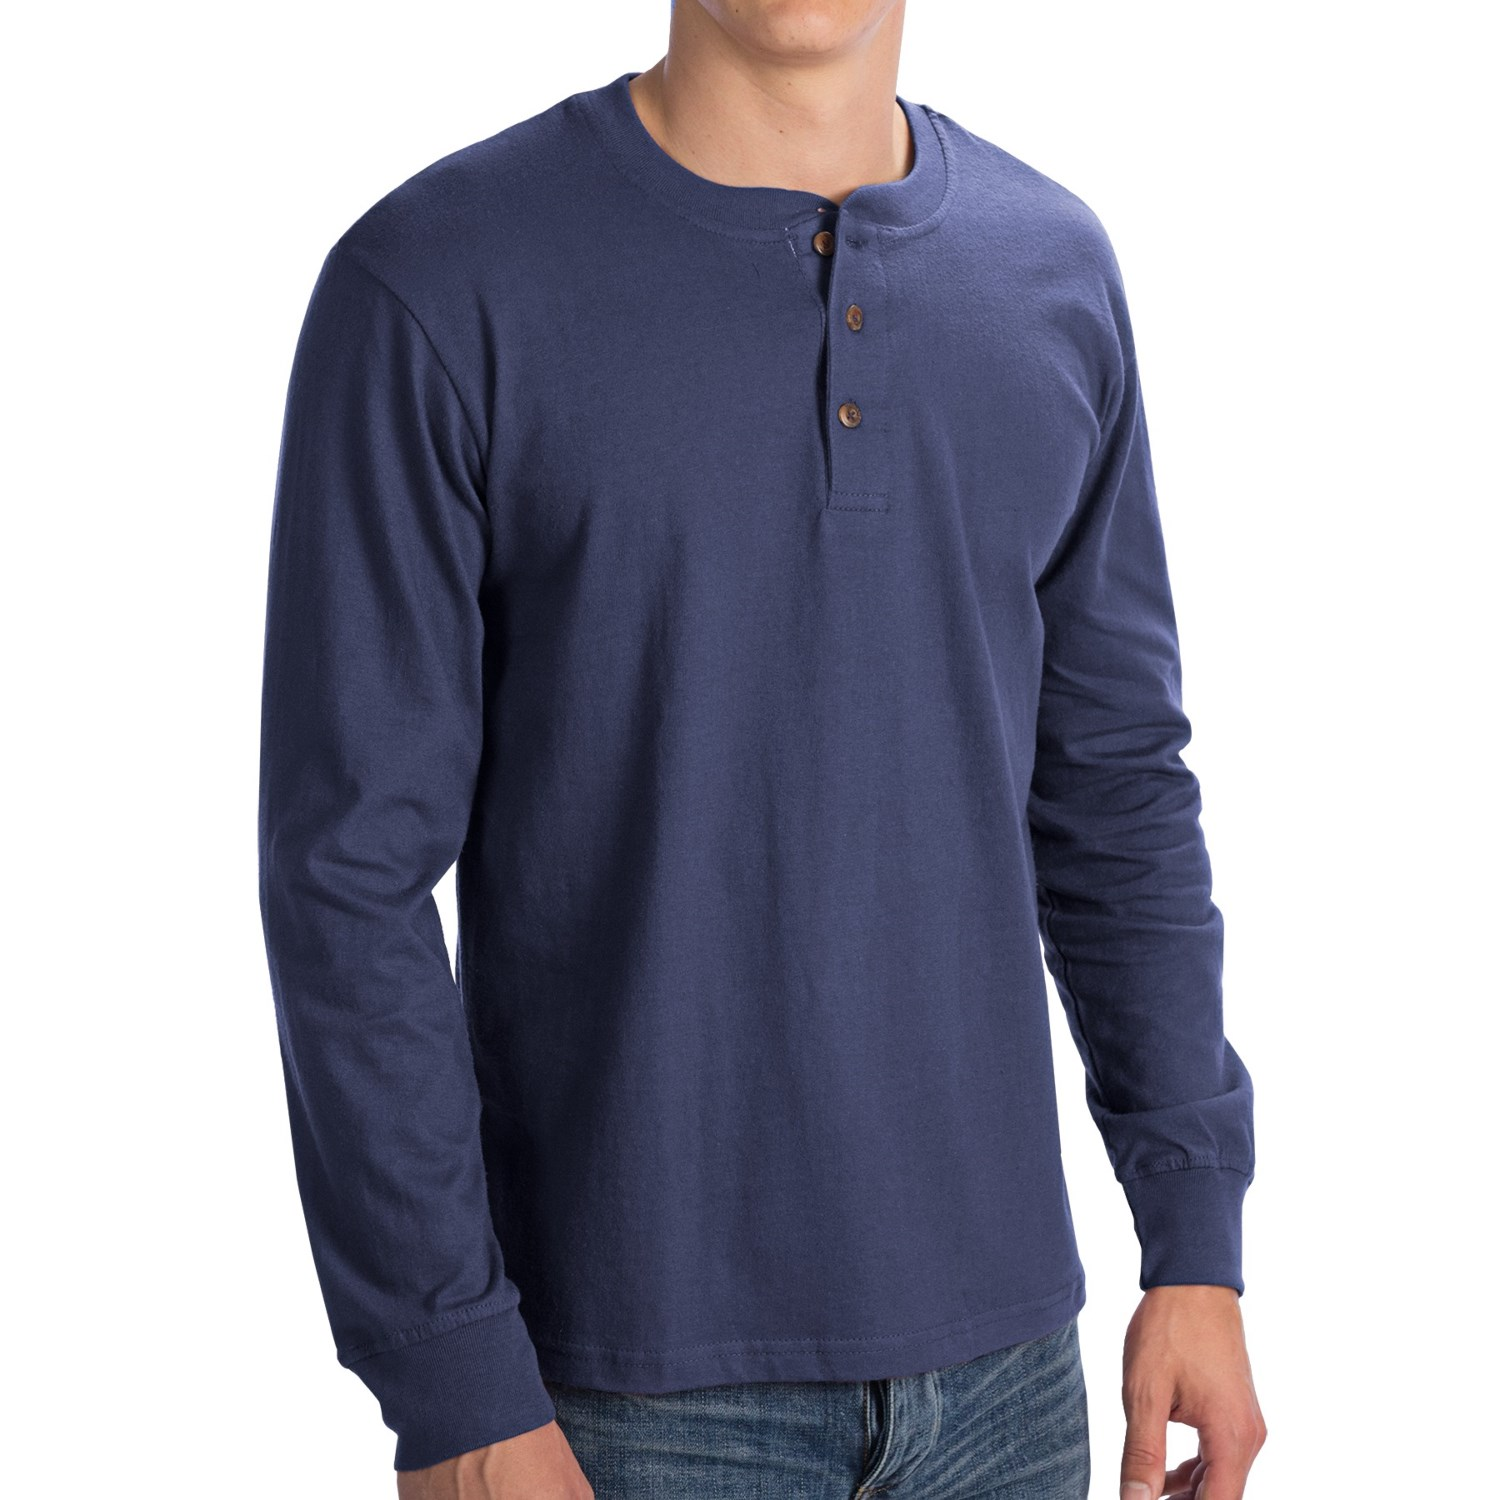 Free shipping BOTH ways on mens long sleeve henley, from our vast selection of styles. Fast delivery, and 24/7/ real-person service with a smile. Click or call